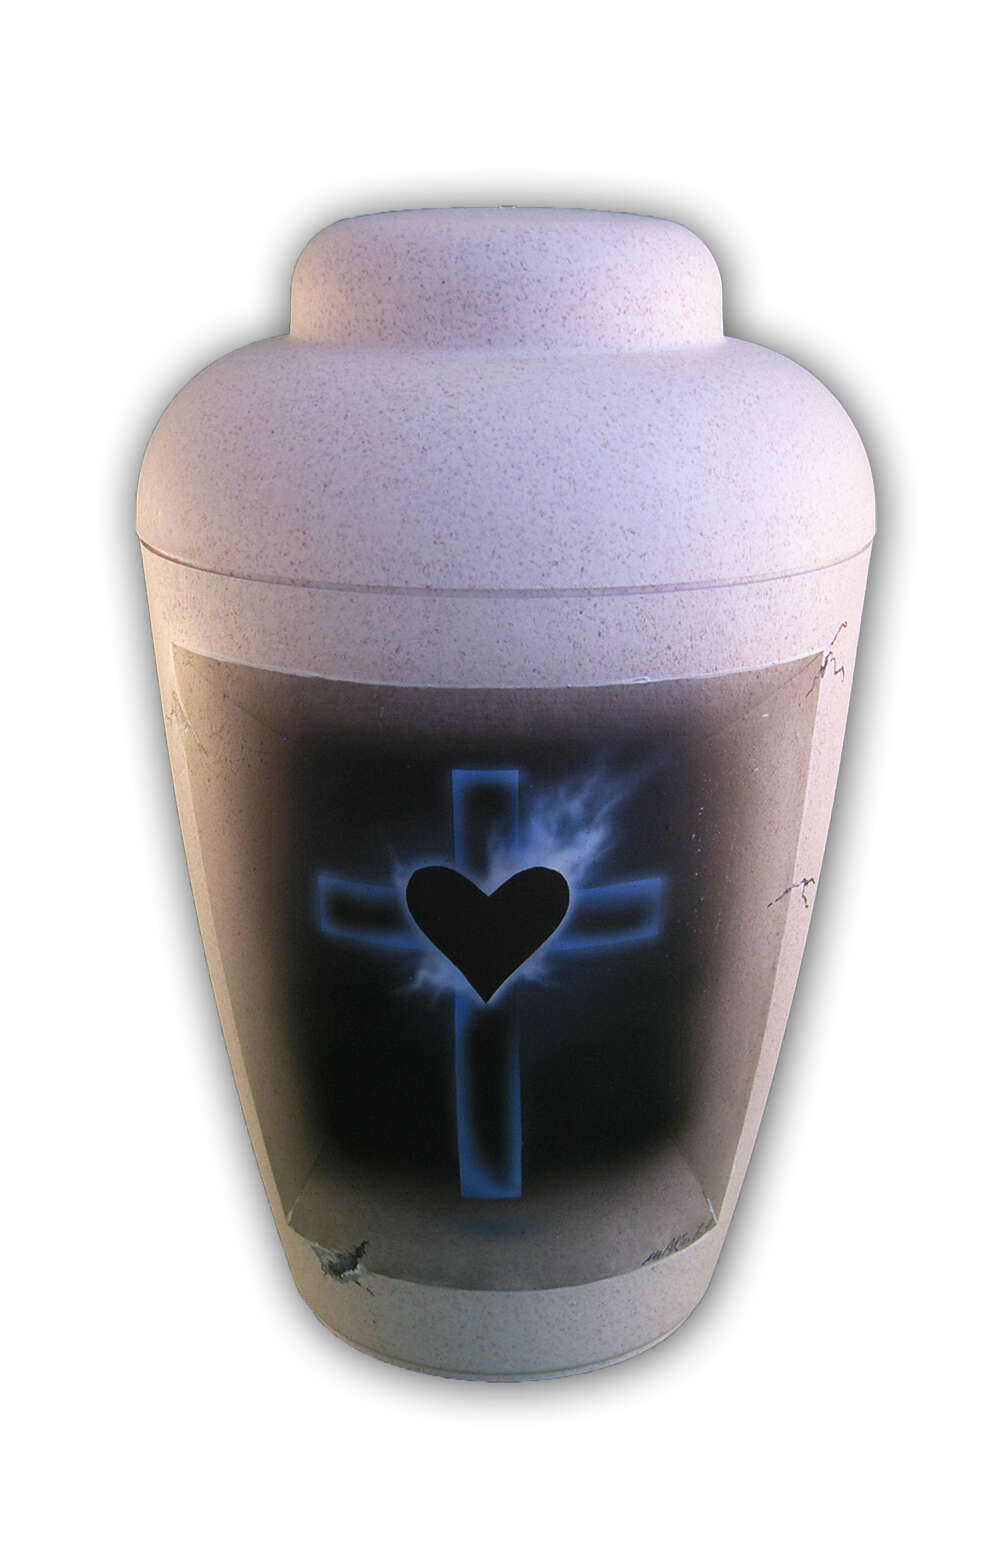 en BAW1309 biodigradable urn airbrush cross blue heart black white funeral urns on sale